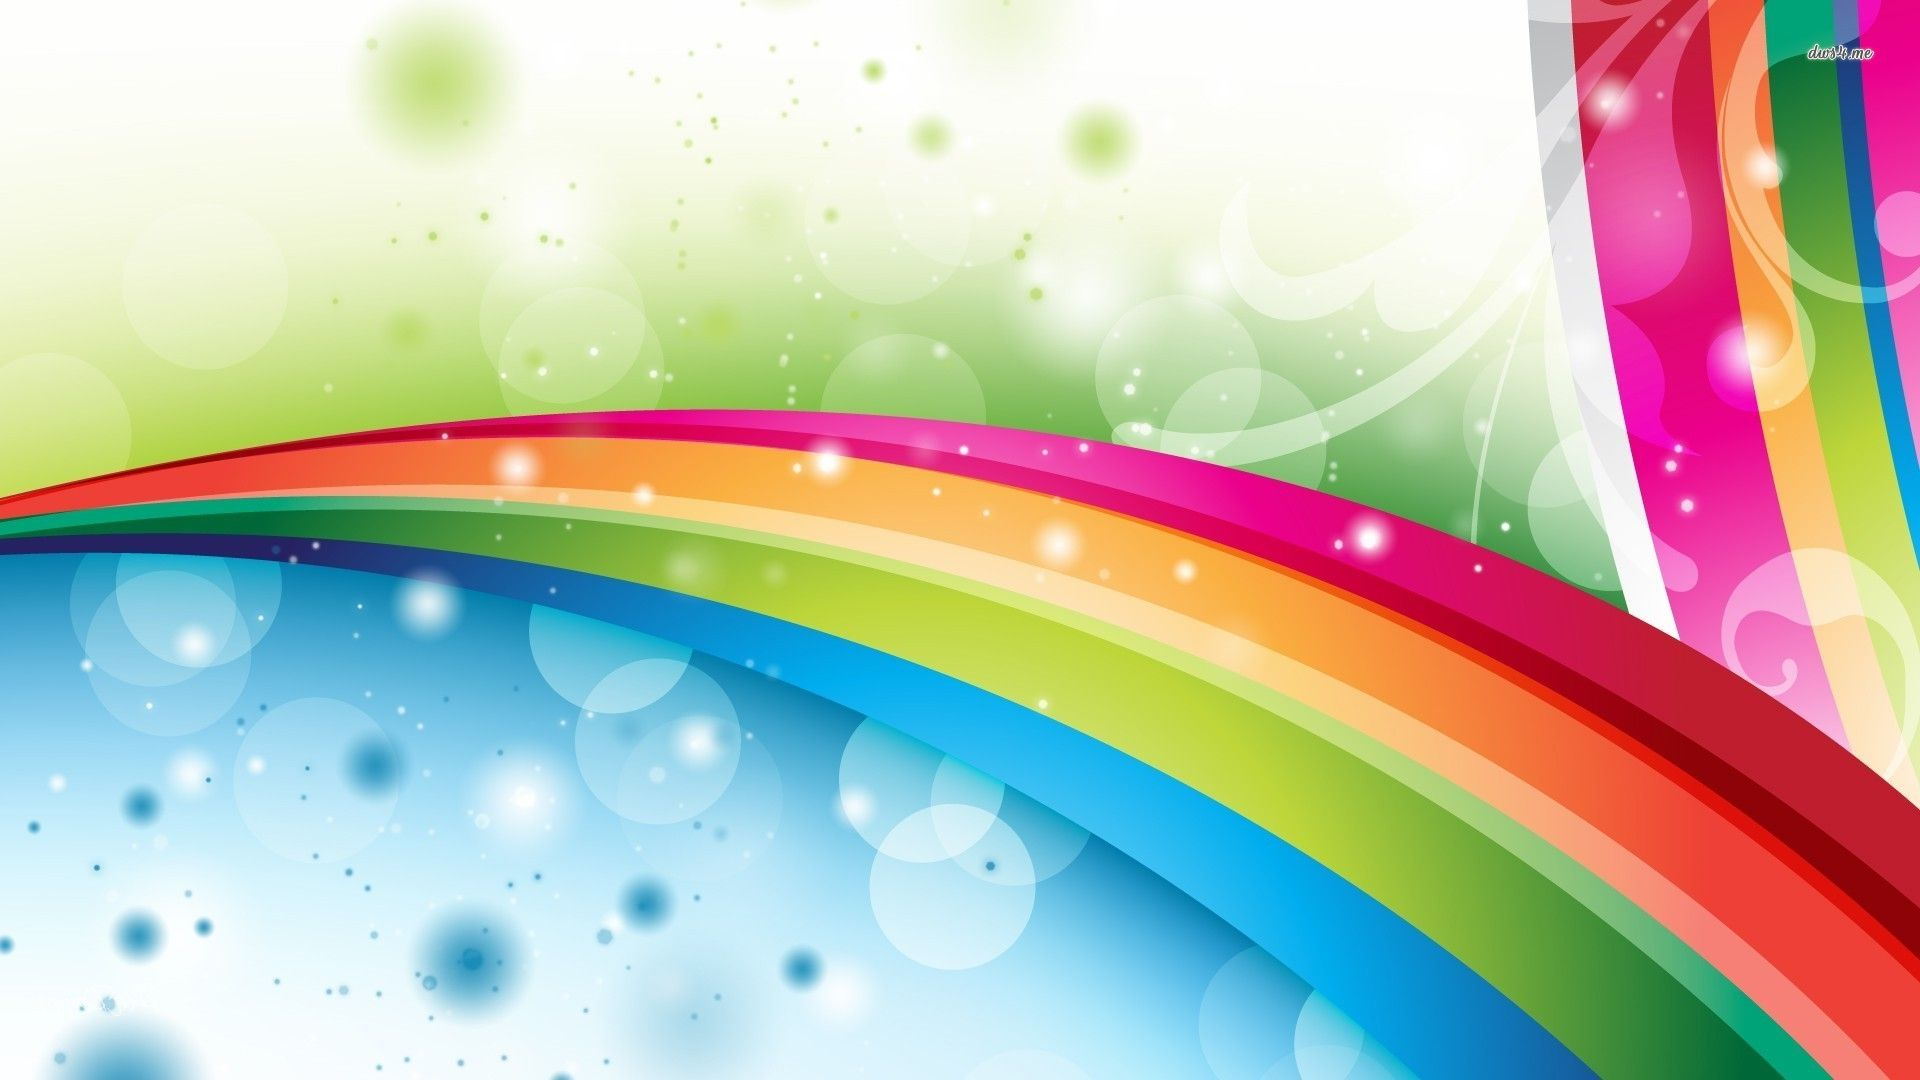 Wallpaper rainbow collection for free download hd for Home wallpaper videos